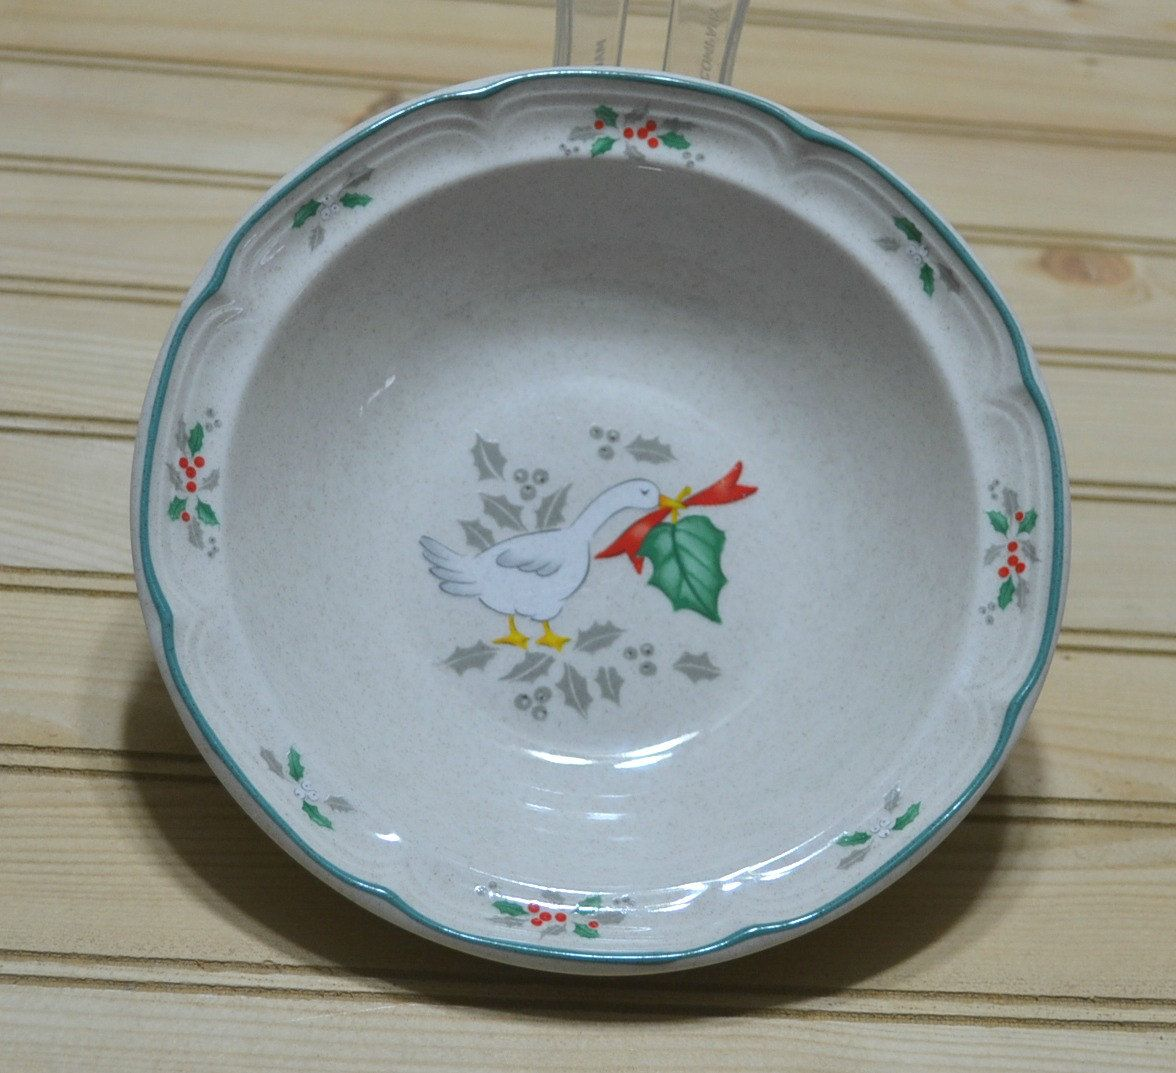 Vintage Christmas Dishes Marmalade Rim Cereal Bowl Stoneware International  Tableworks Japan Geese Red Ribbon Holly Green